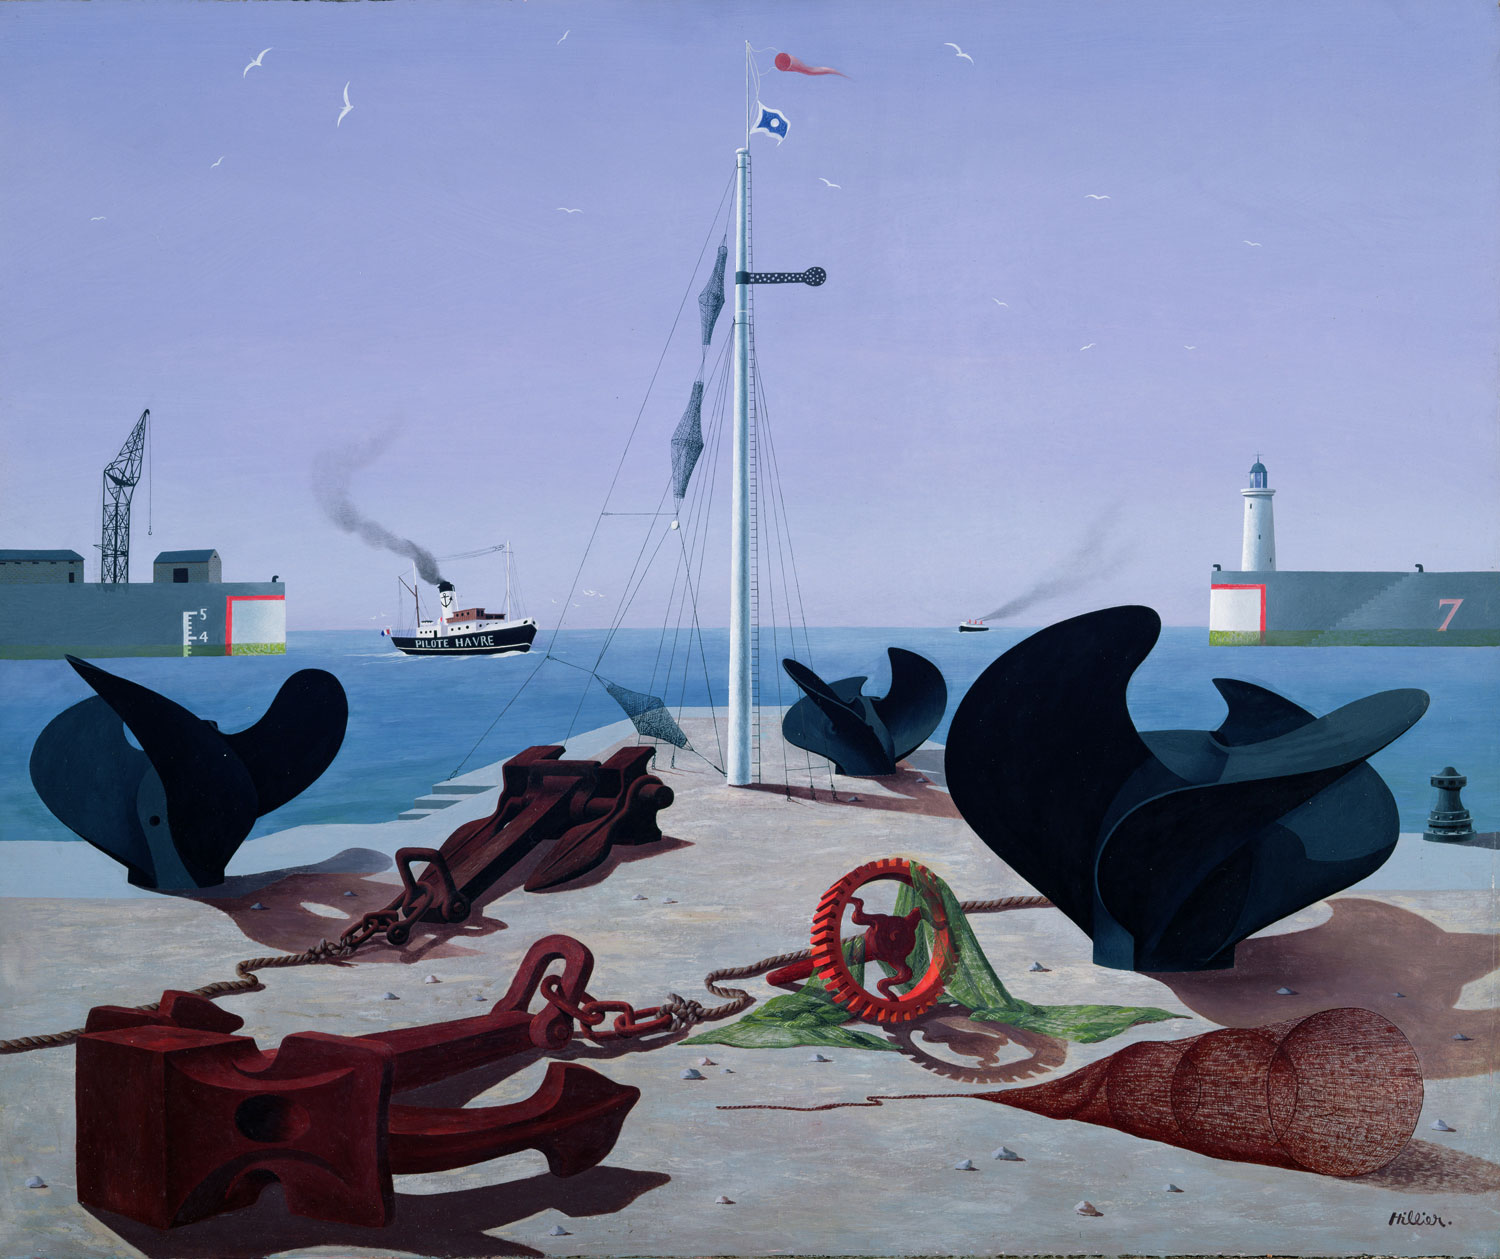 a harbour scene with propellers and anchors in foreground